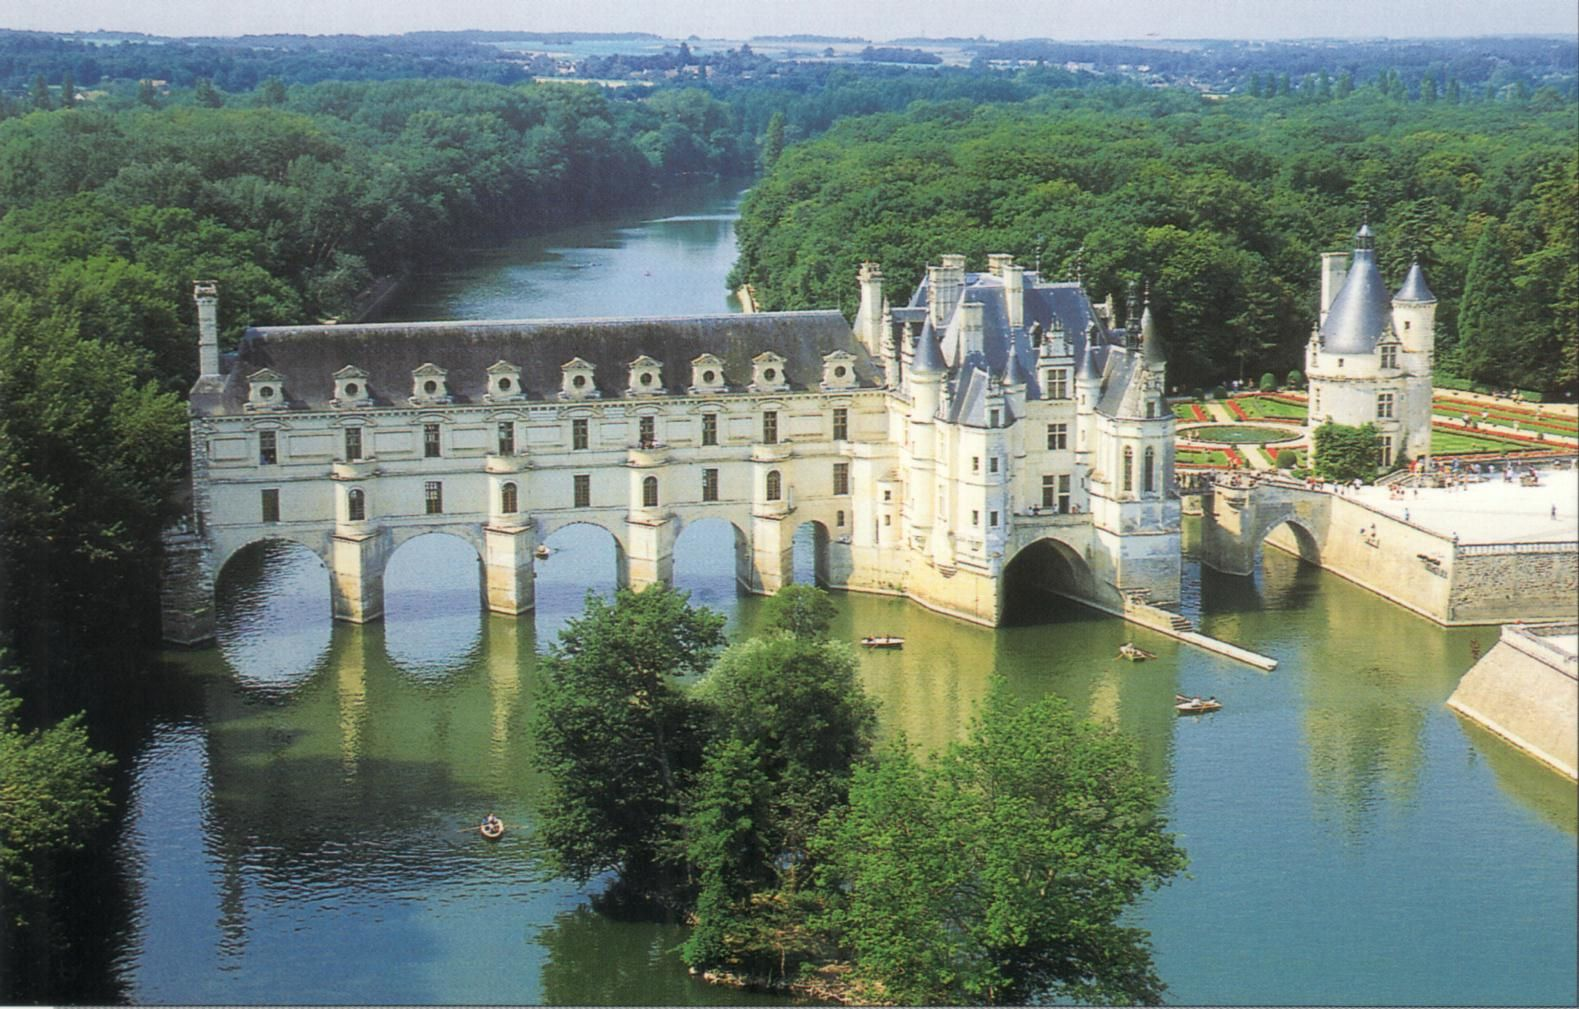 le ch teau de chenonceau une architecture du bord de l eau partie 2 a la d couverte des. Black Bedroom Furniture Sets. Home Design Ideas